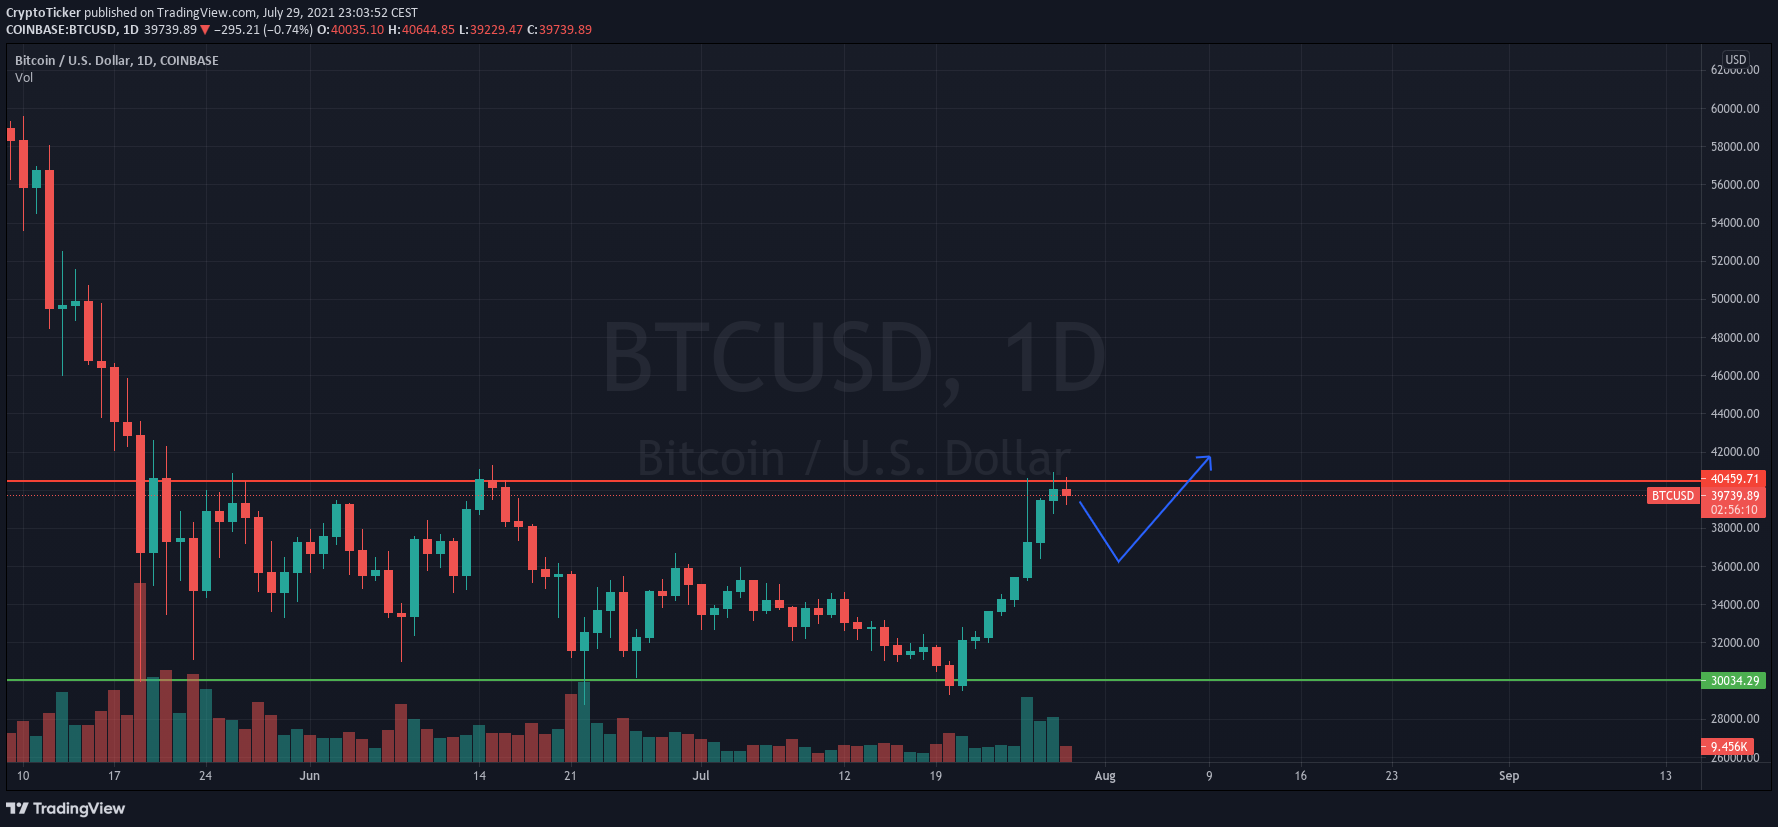 Bitcoin Price Prediction: BTC/USD 1-day chart showing a potential adjustment in prices